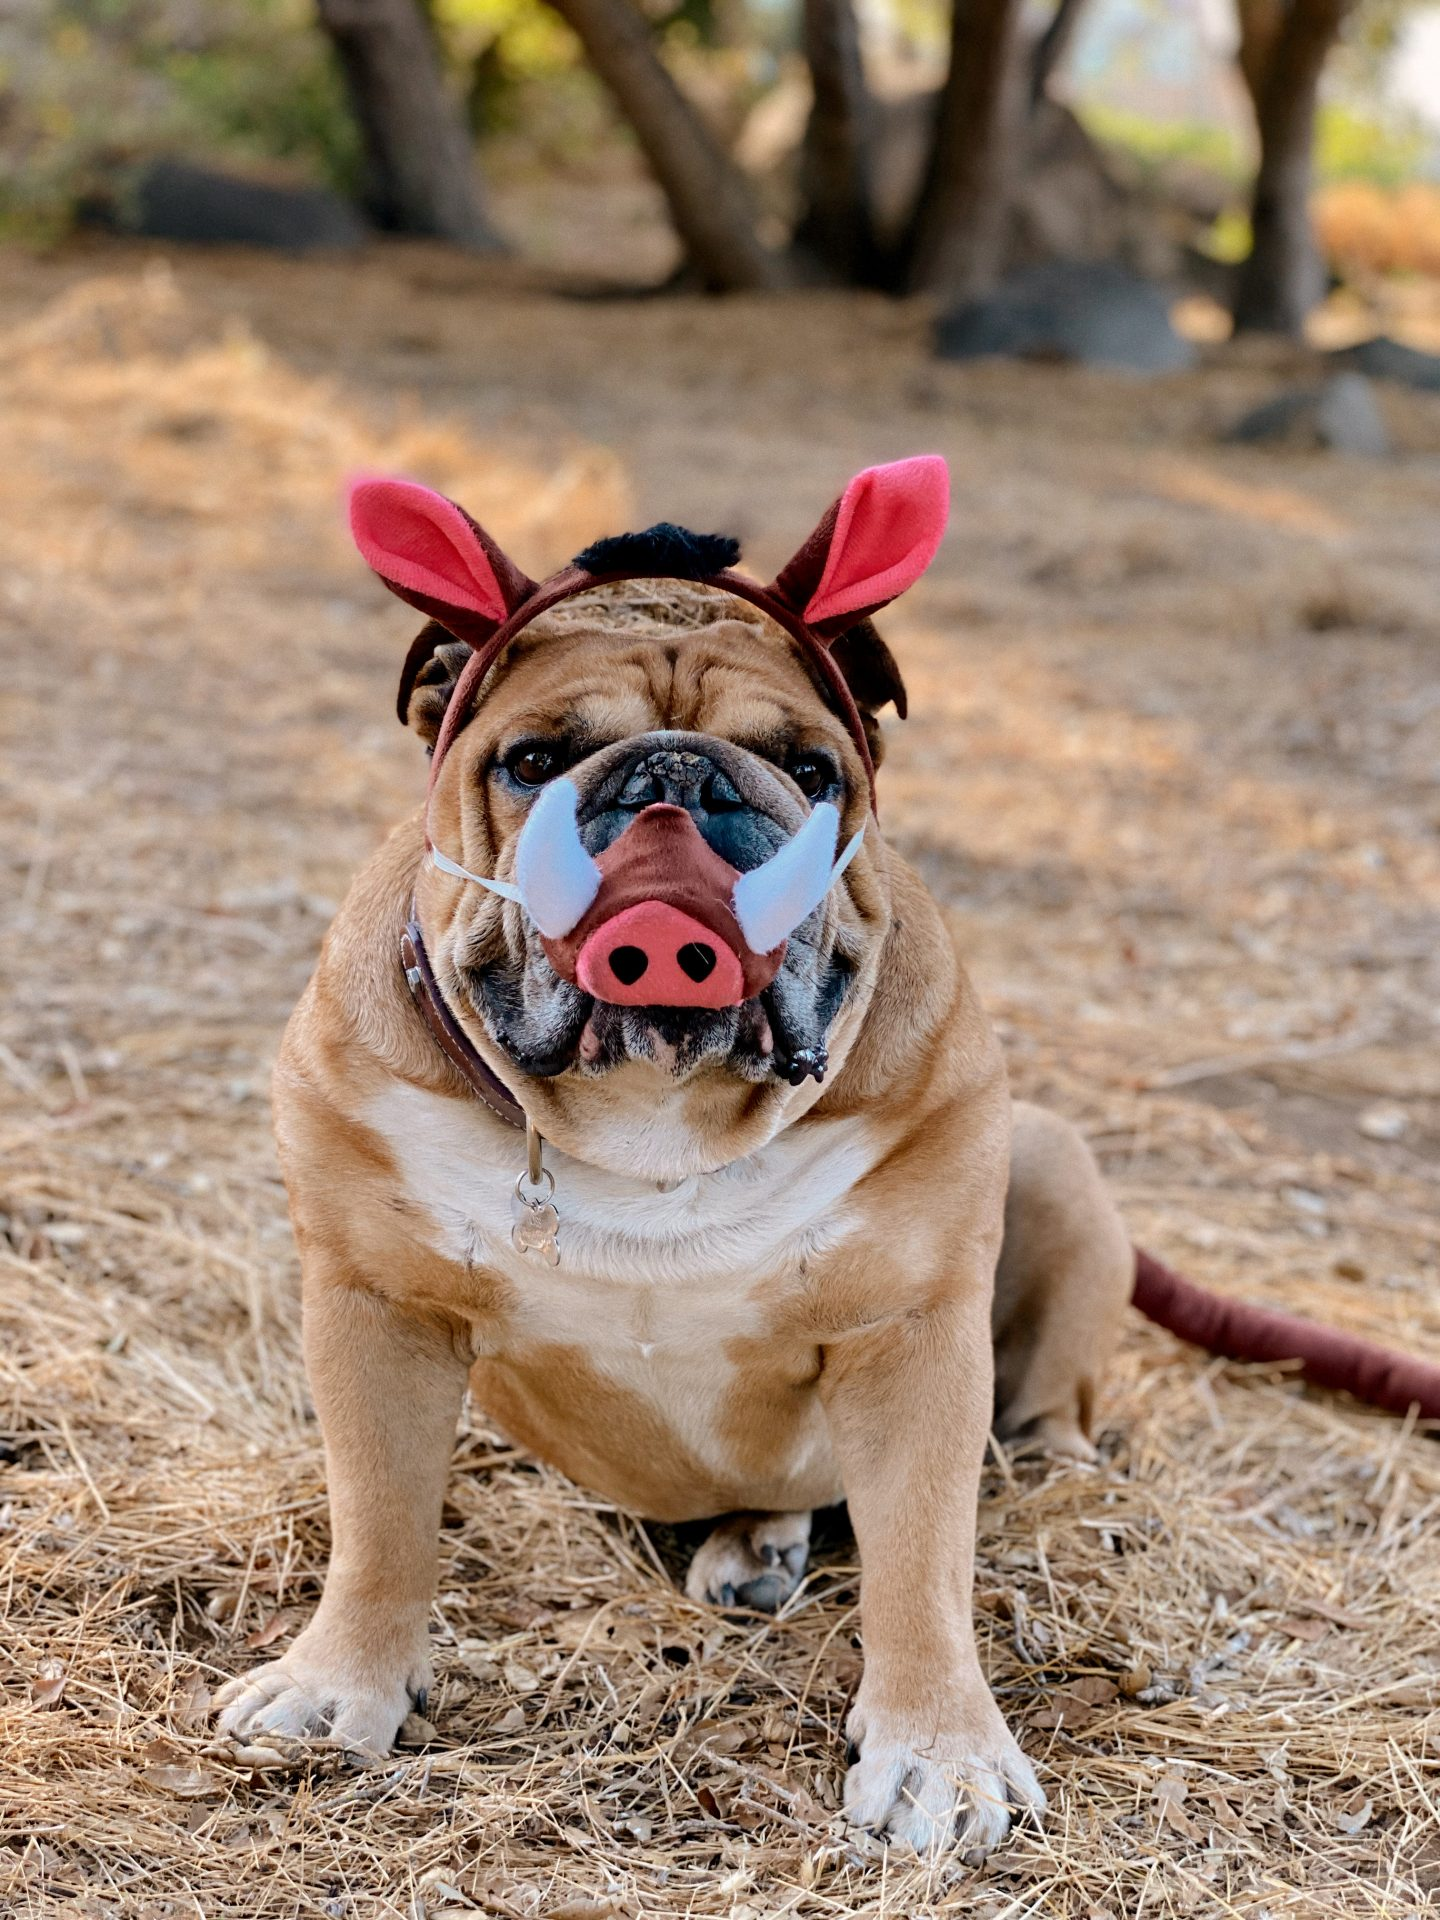 Family Halloween Costumes by popular San Diego lifestyle blog, Navy Grace: image of a dog dressed up as Pumba from The Lion King.